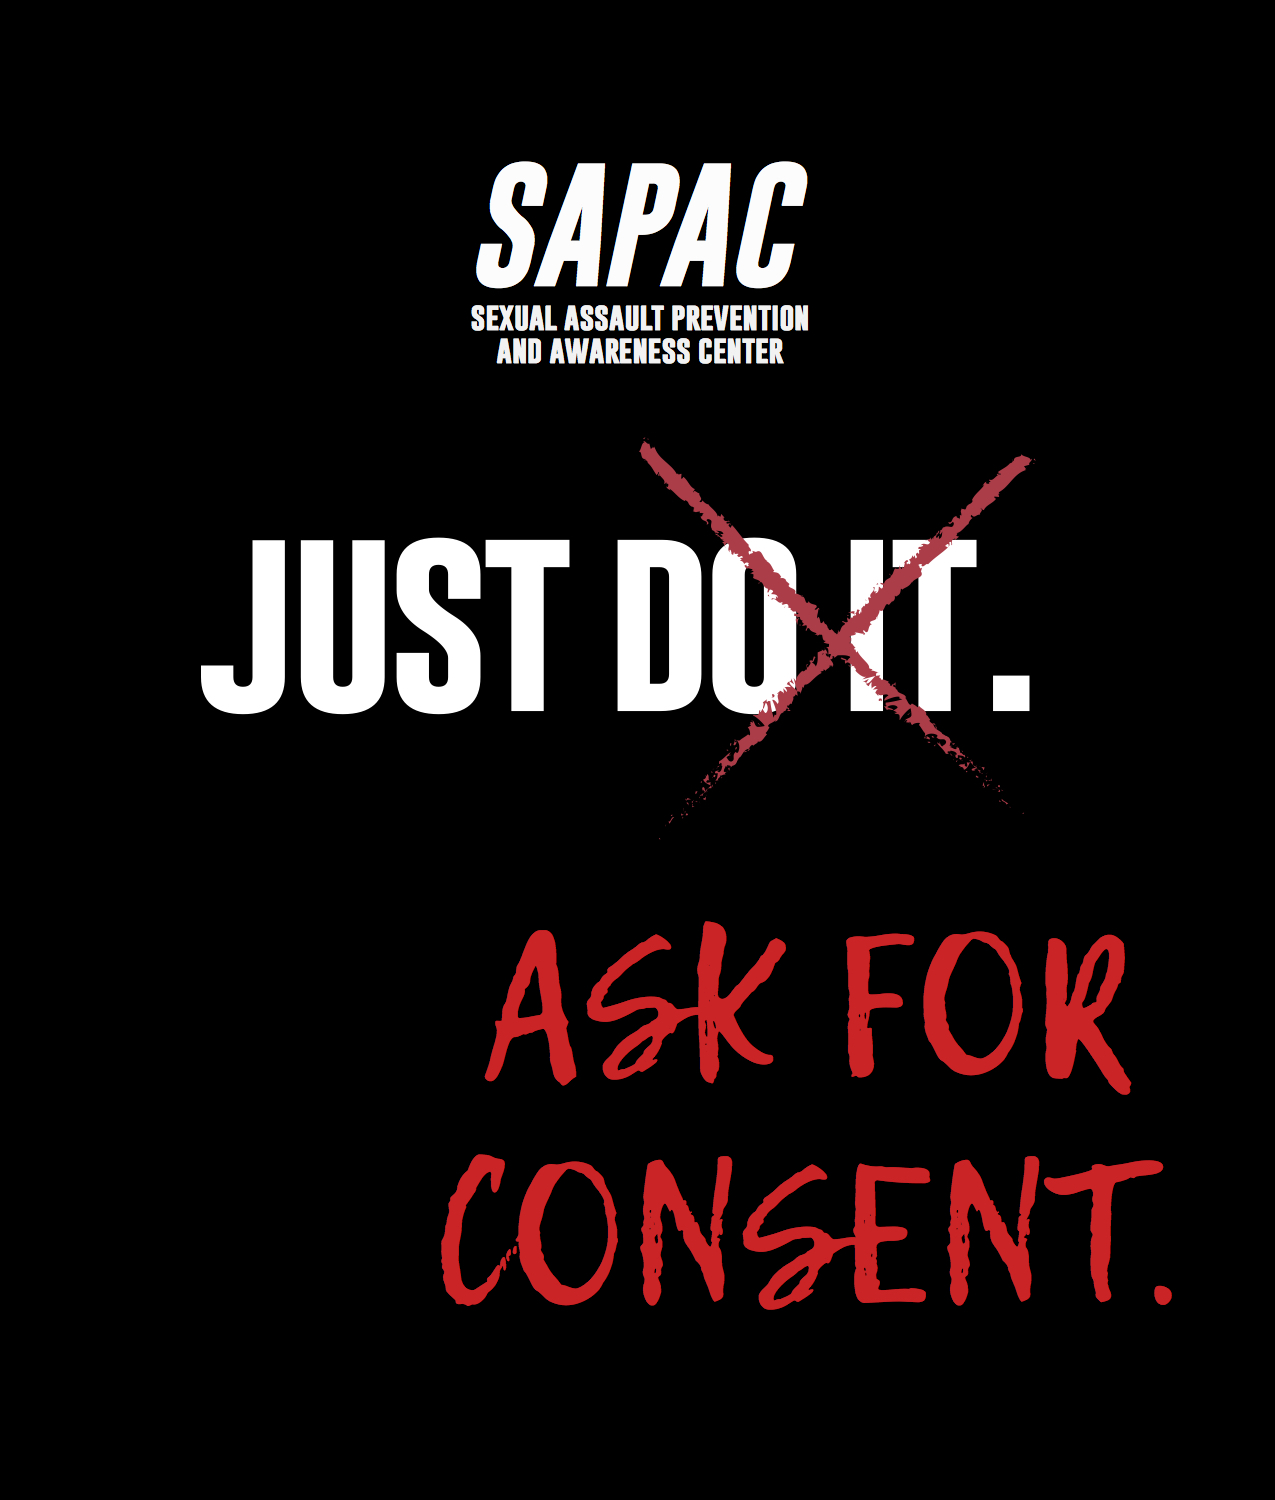 Just Ask for Consent